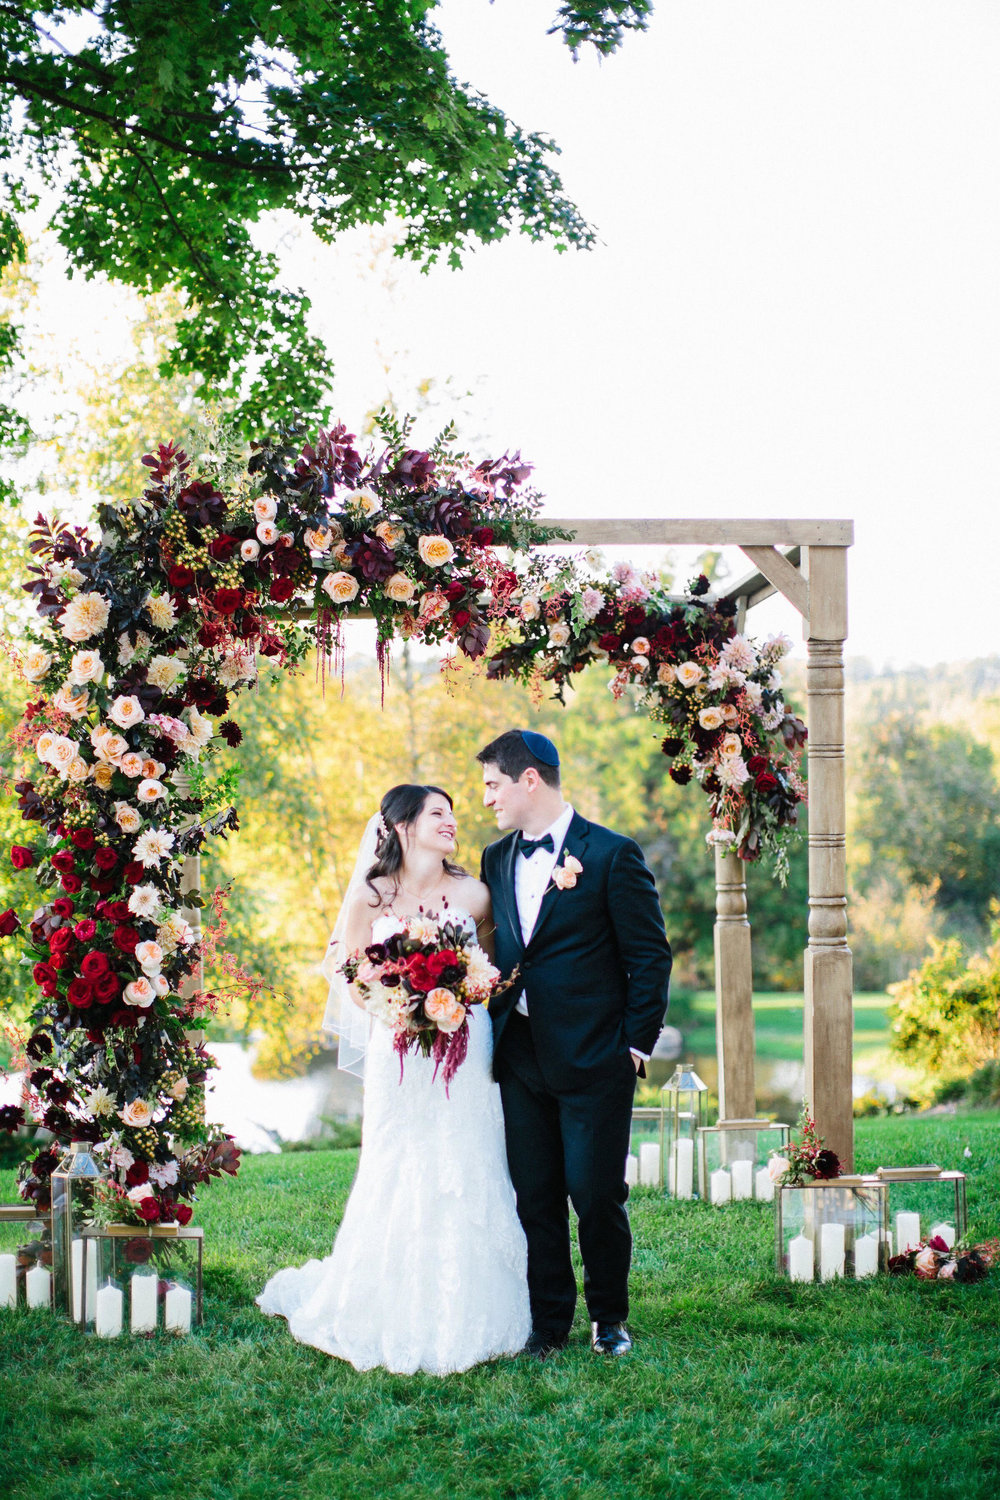 Photo Credit: Kristina Lorraine Photography // Flowers by Frontier Flowers of Fontana